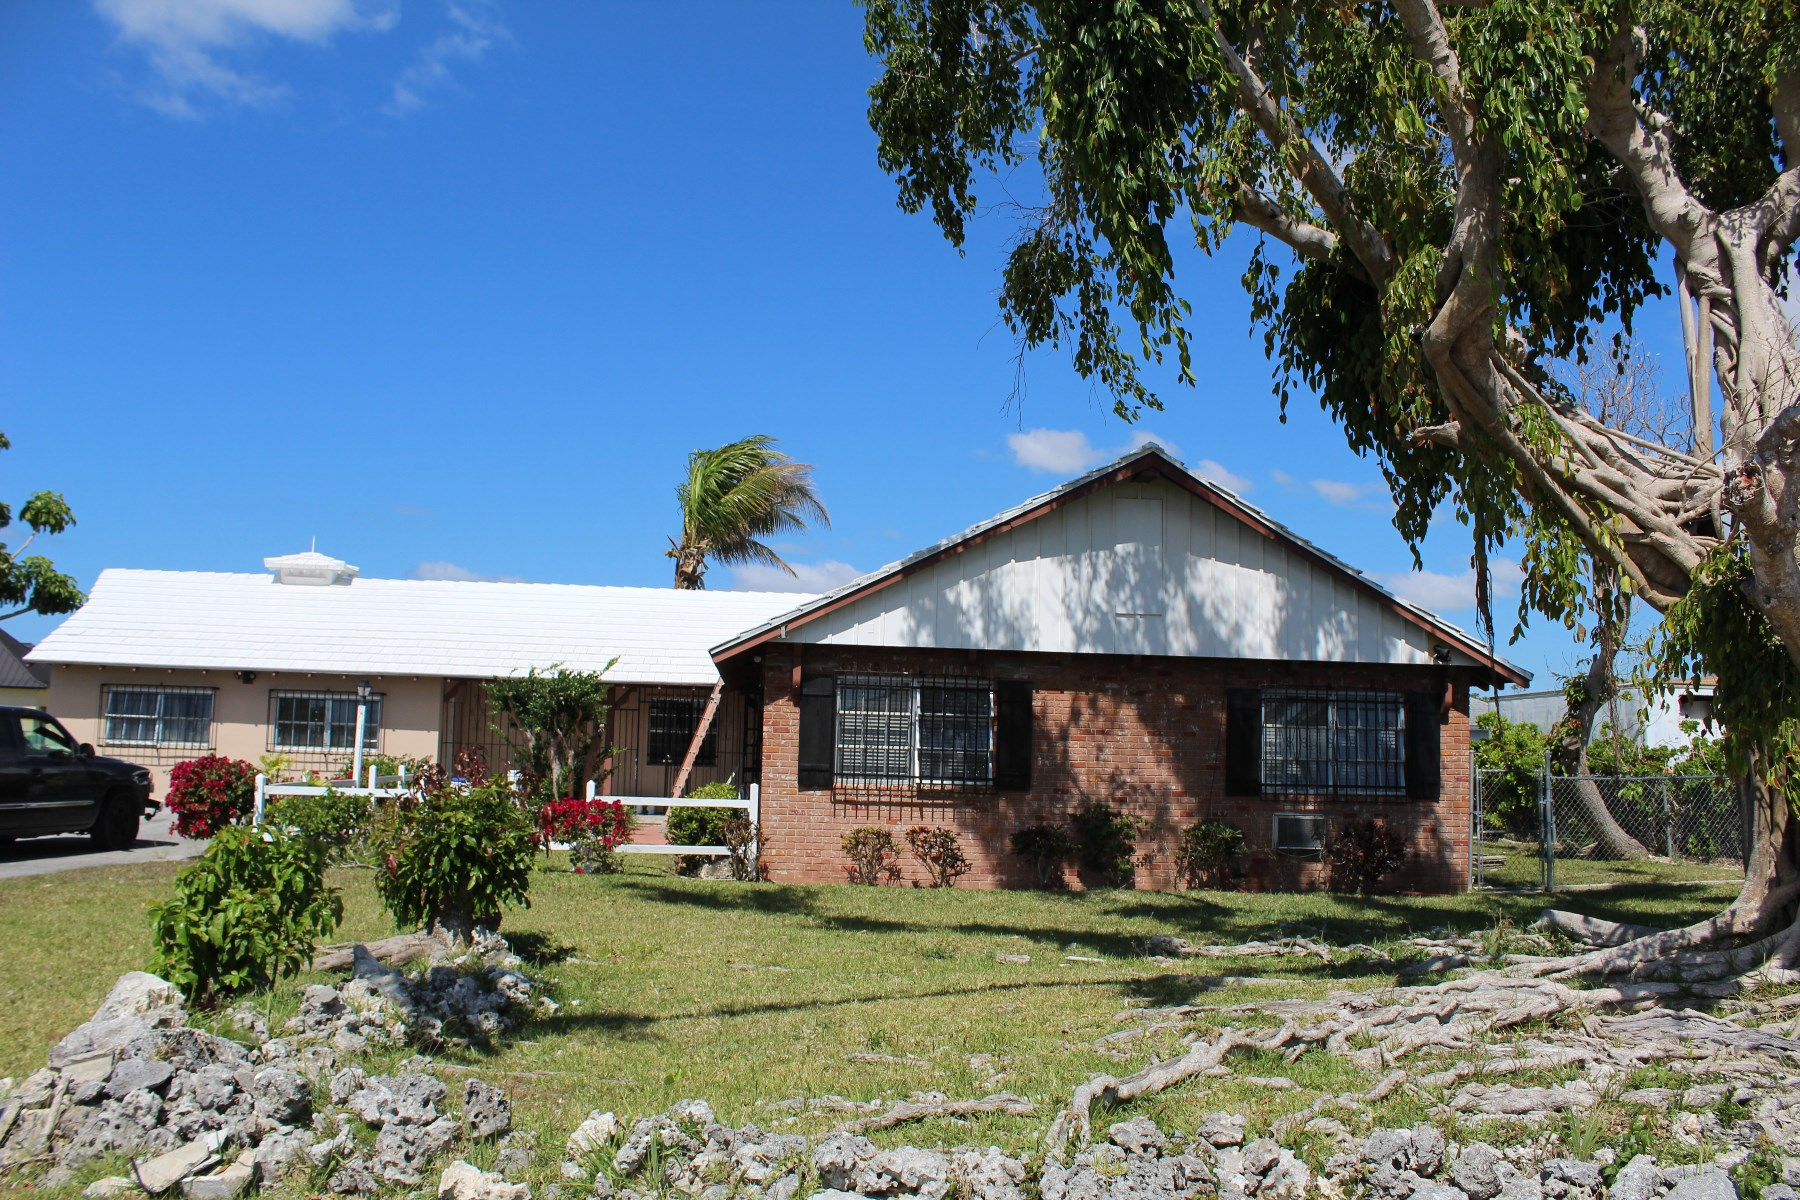 Single Family Home for Sale at Charming Bahamia Home Bahamia, Grand Bahama, Bahamas